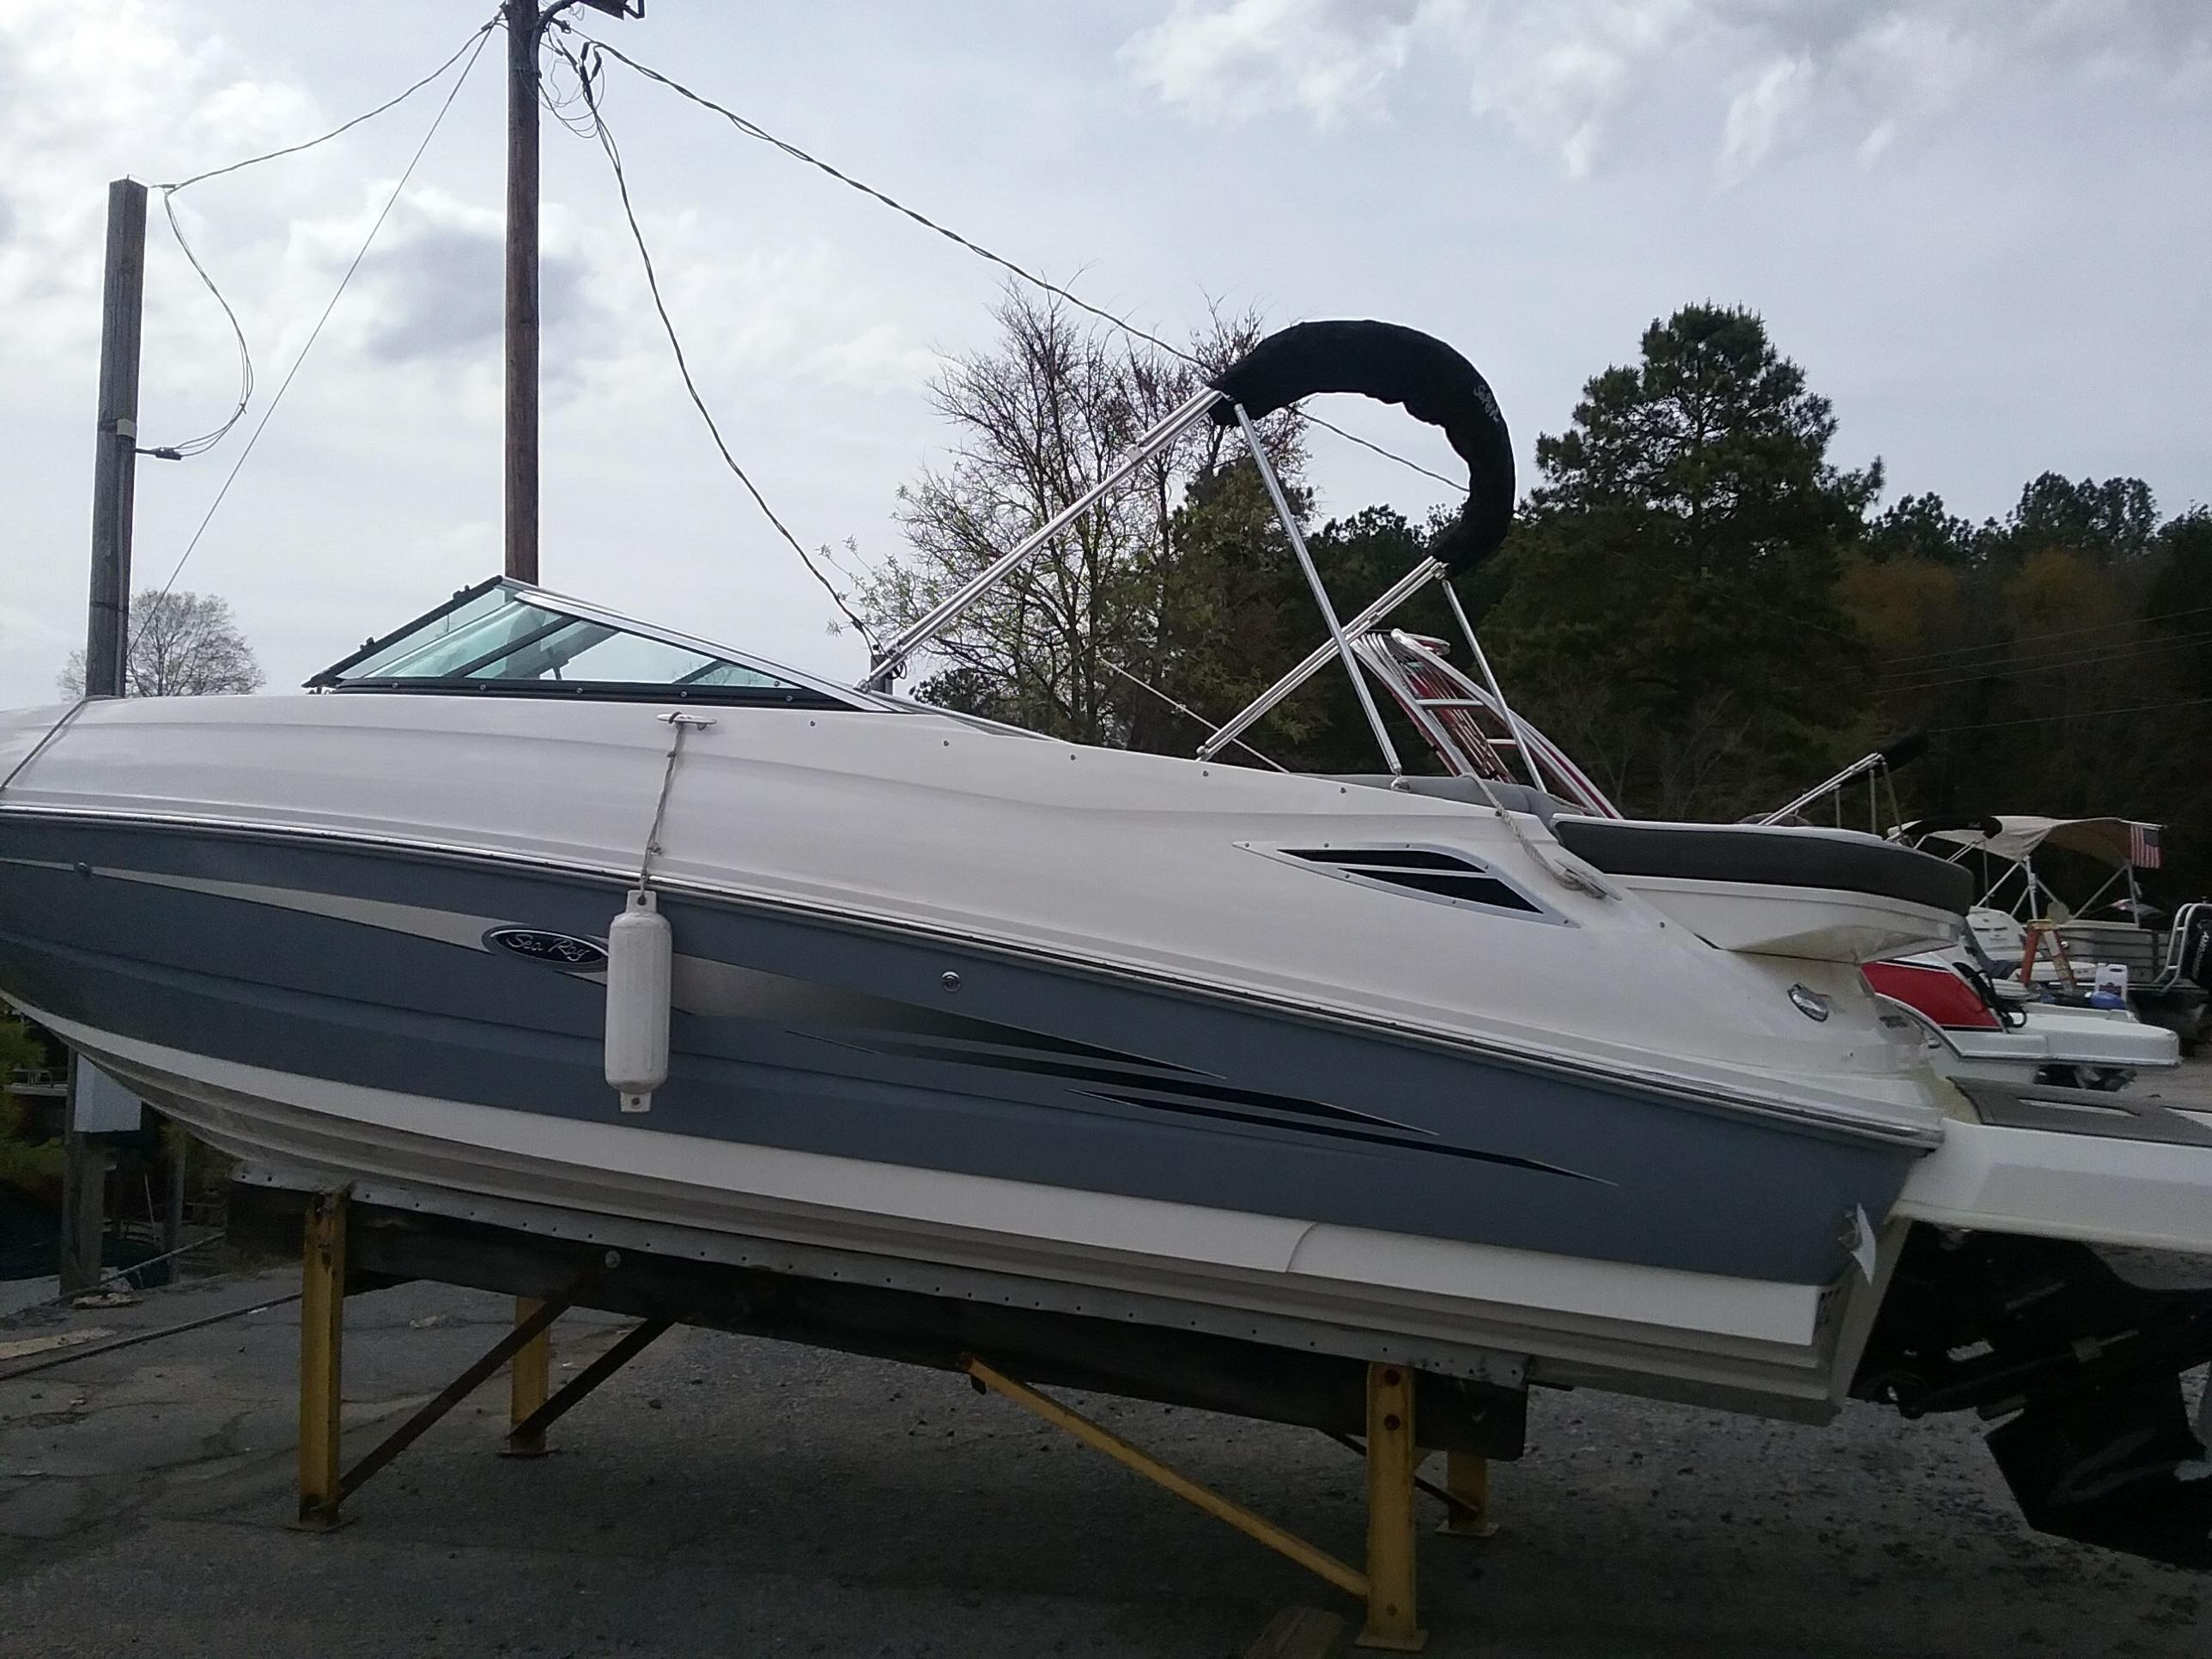 1999 Sea Ray Sundeck 240 - Year of Clean Water